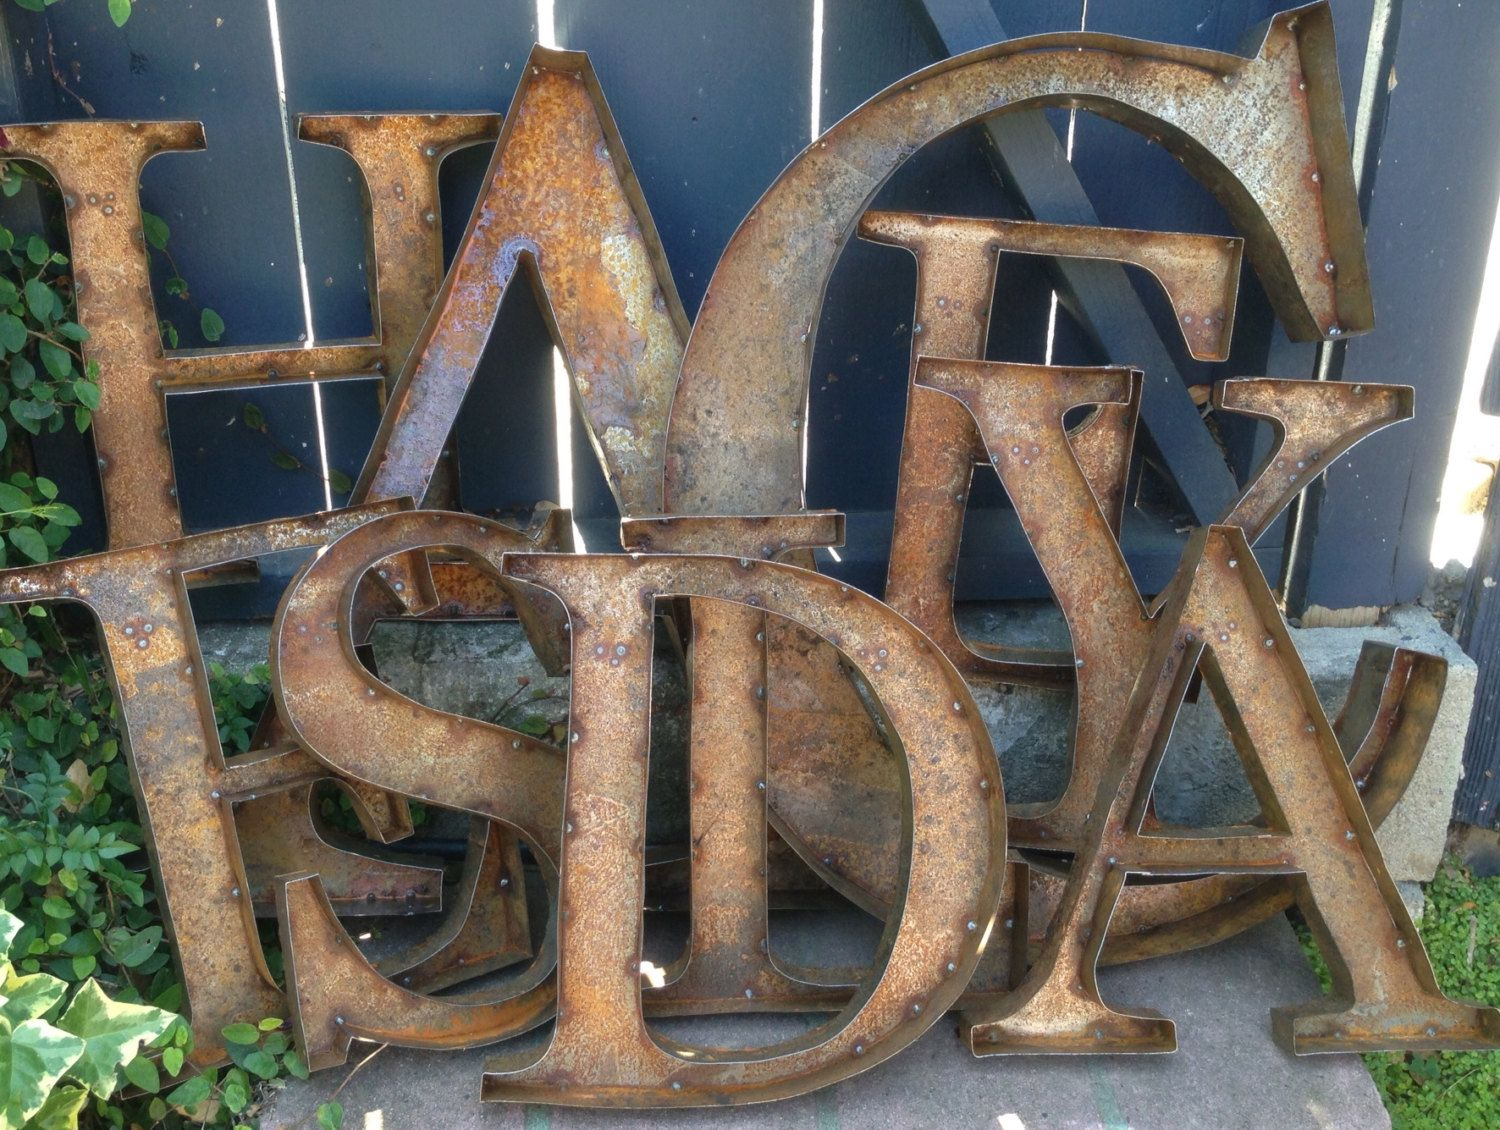 Rustic Metal Letters And Numbers Beauteous Az 24 Lettres Métal Rustique Des Nombres & Par Tulipsntoadstools Decorating Inspiration